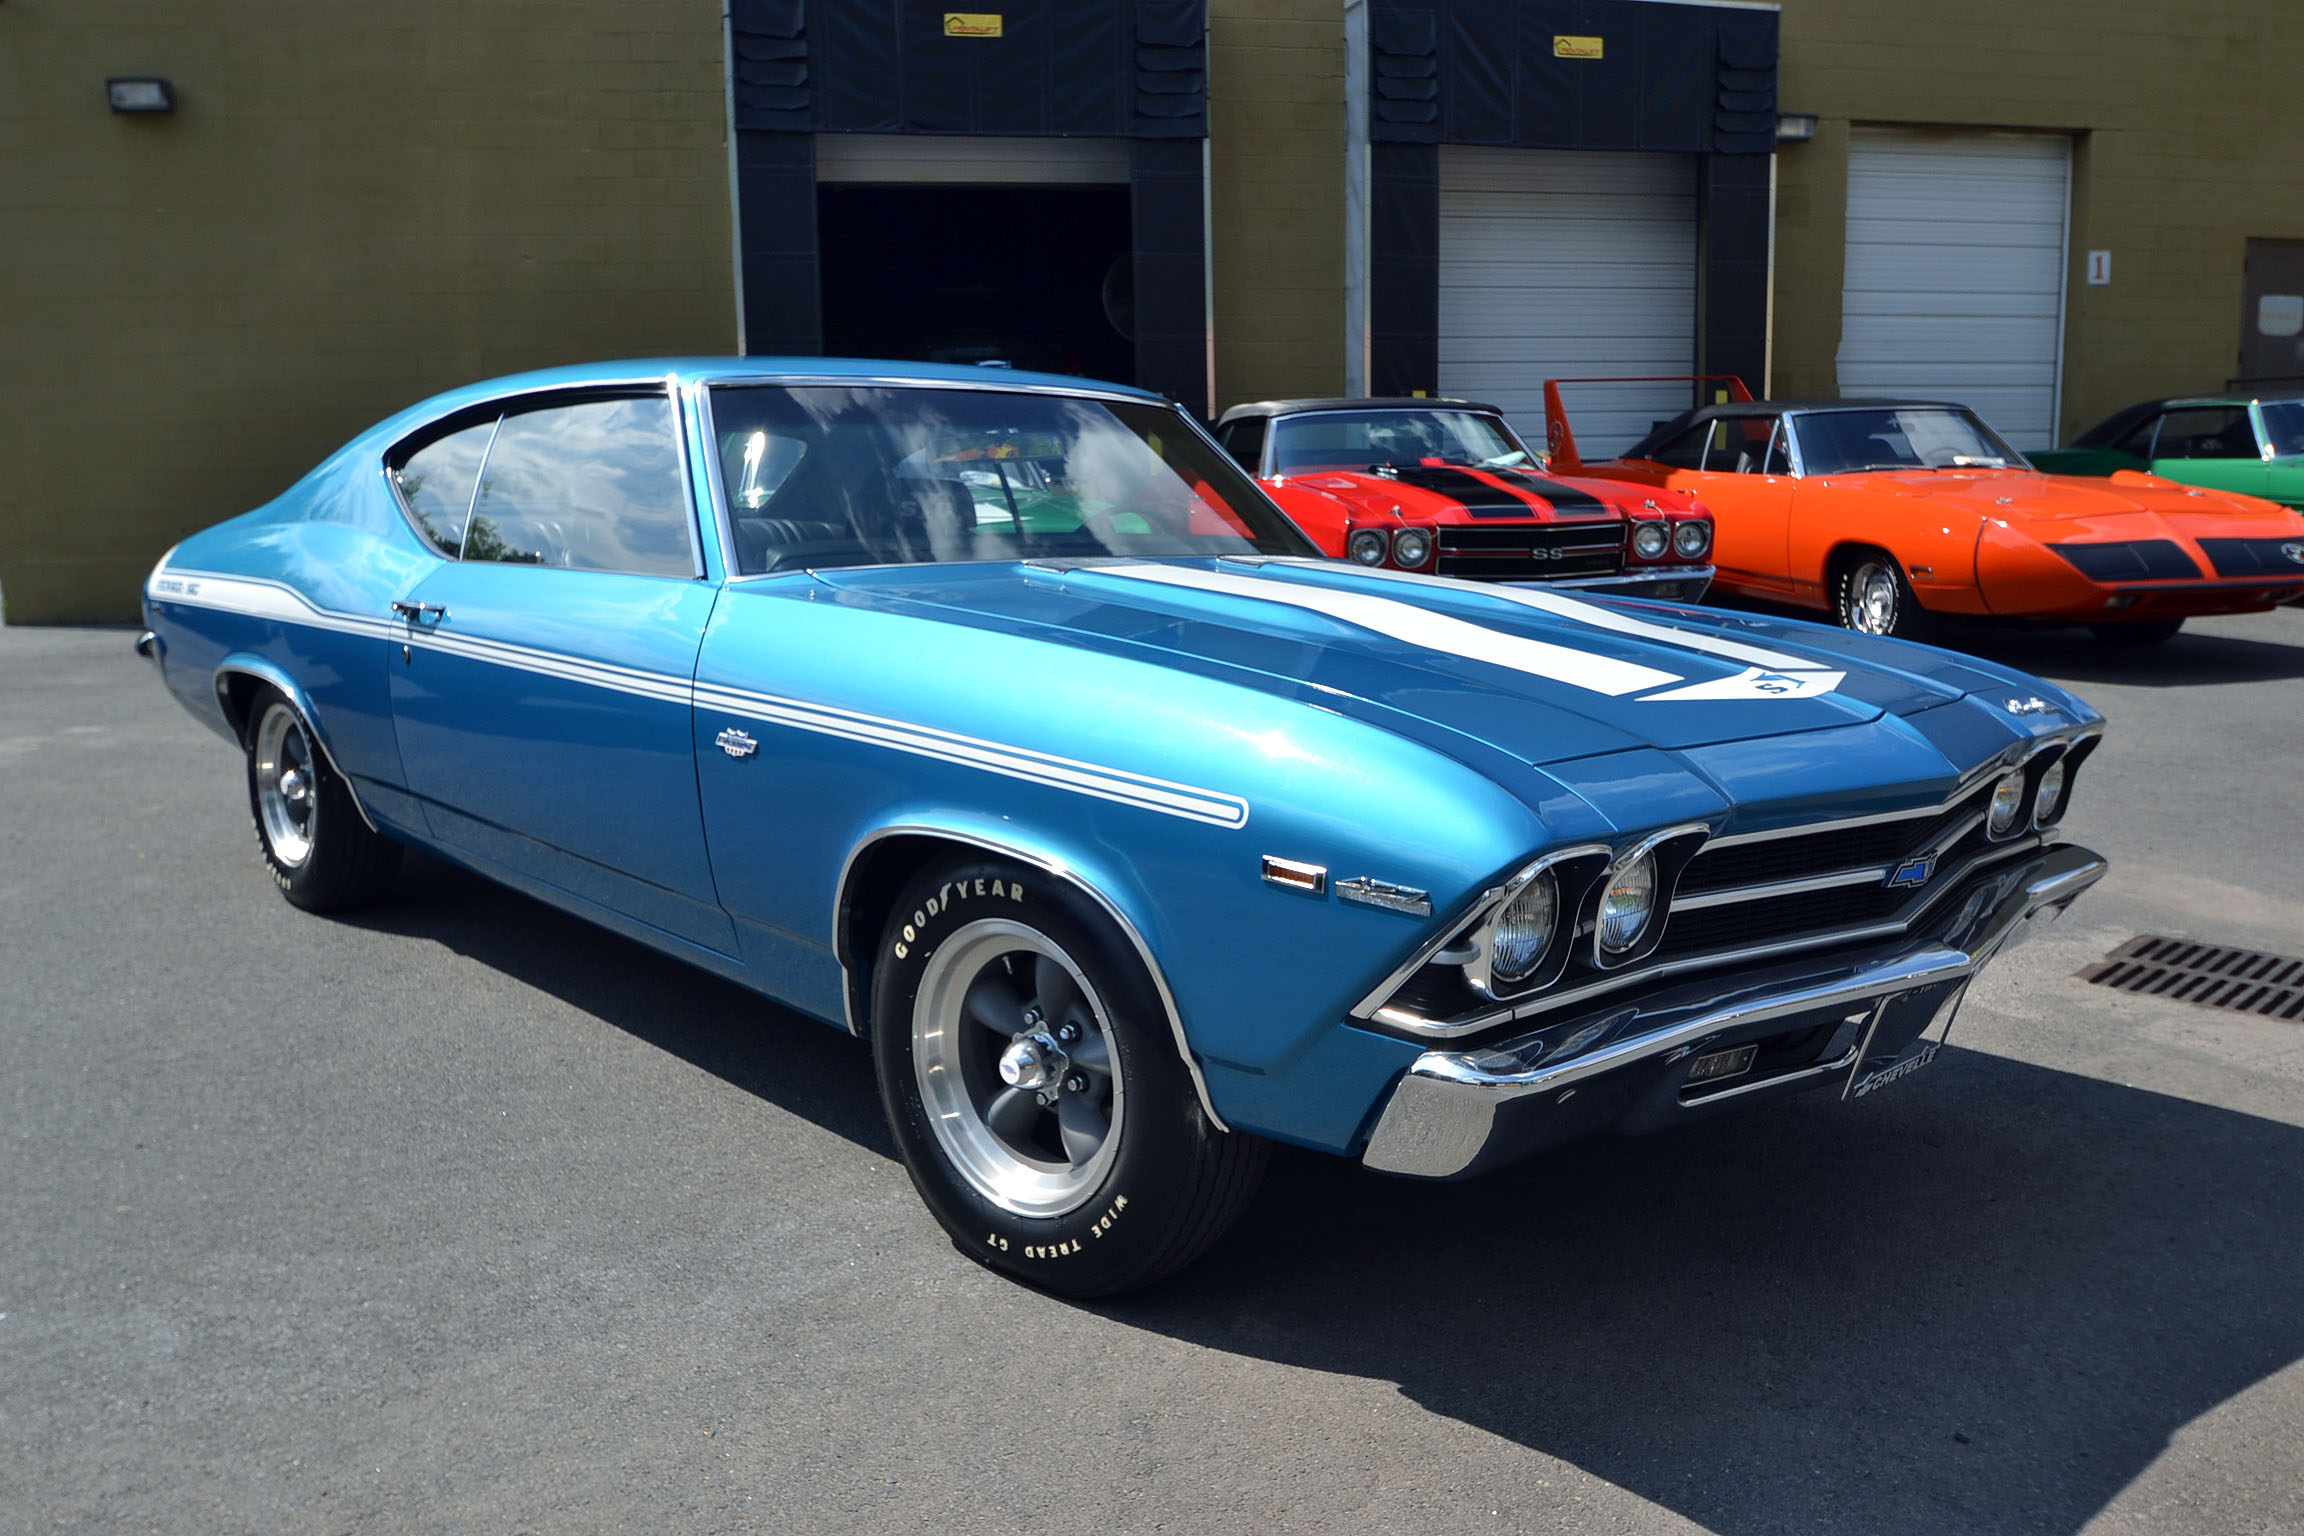 Muscle Cars You Should Know: The Yenko Chevrolets